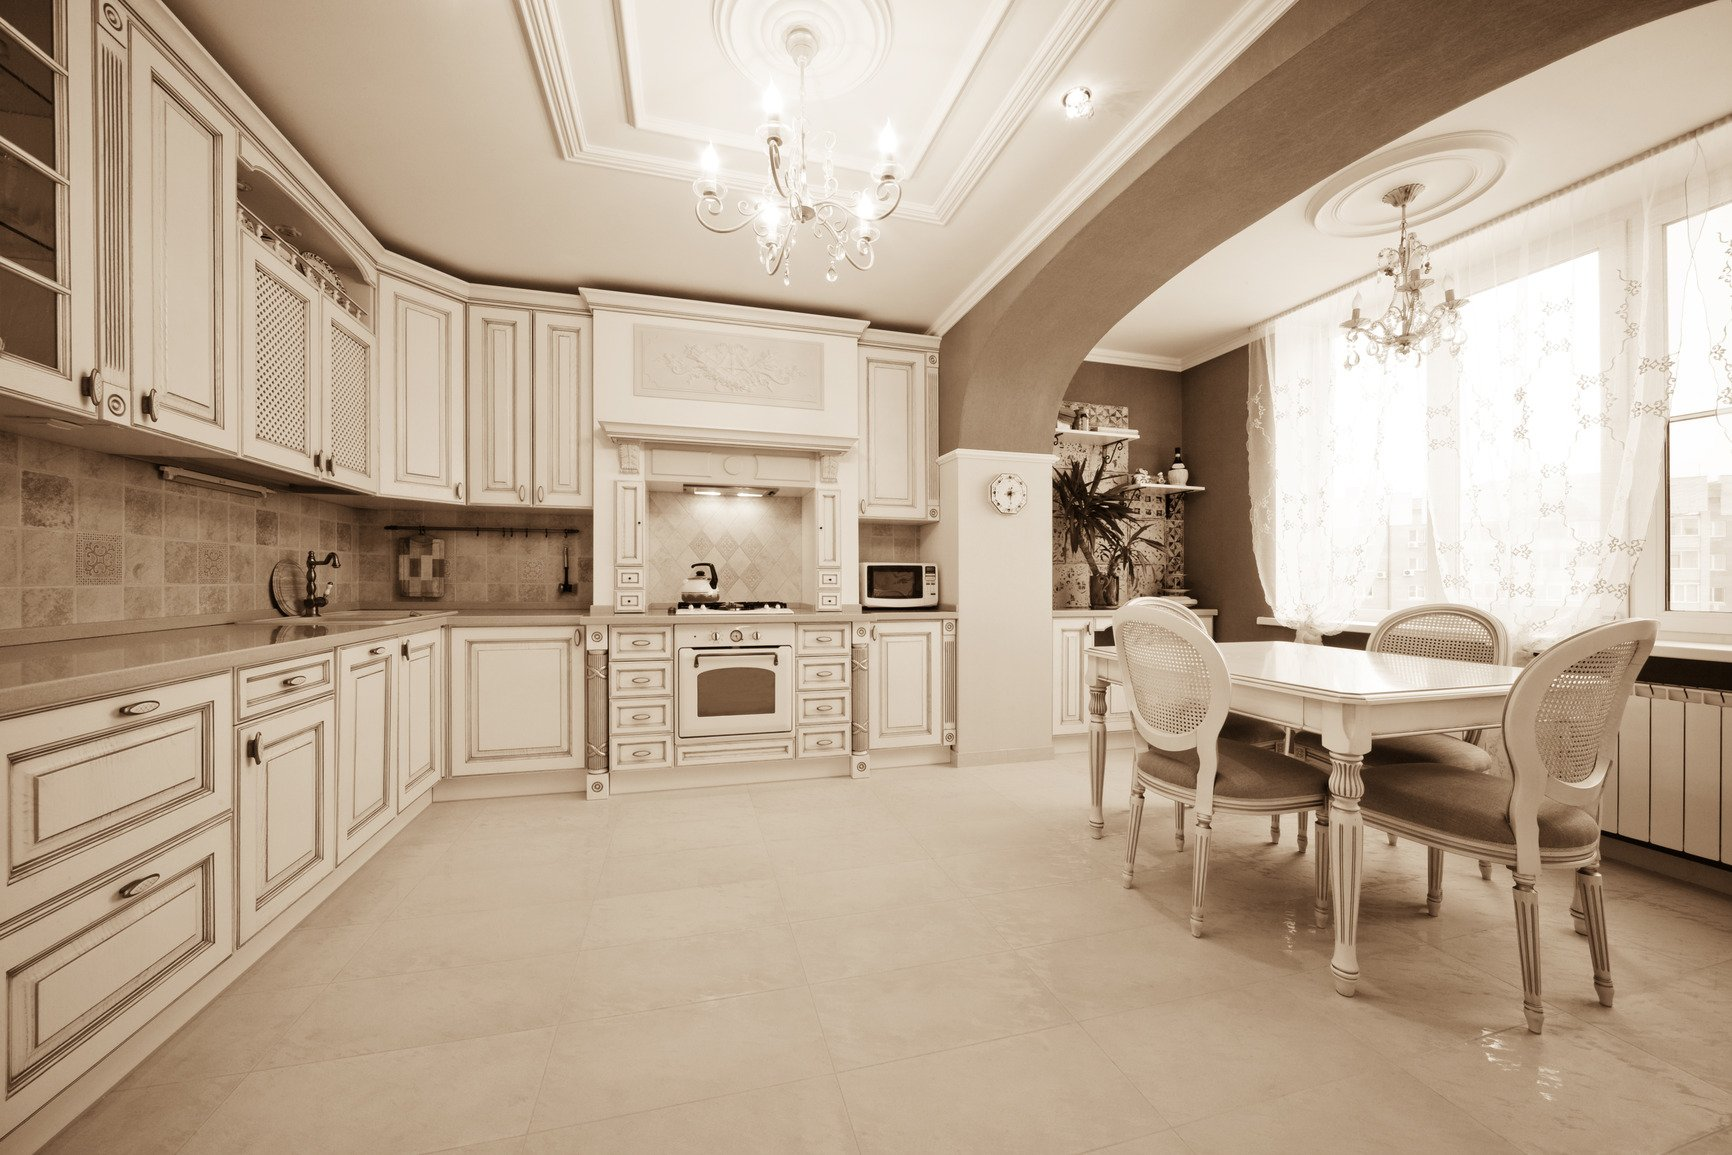 Kitchen Cabinets Vancouver kitchen cabinets surrey bc - custom kitchen cabinets vancouver